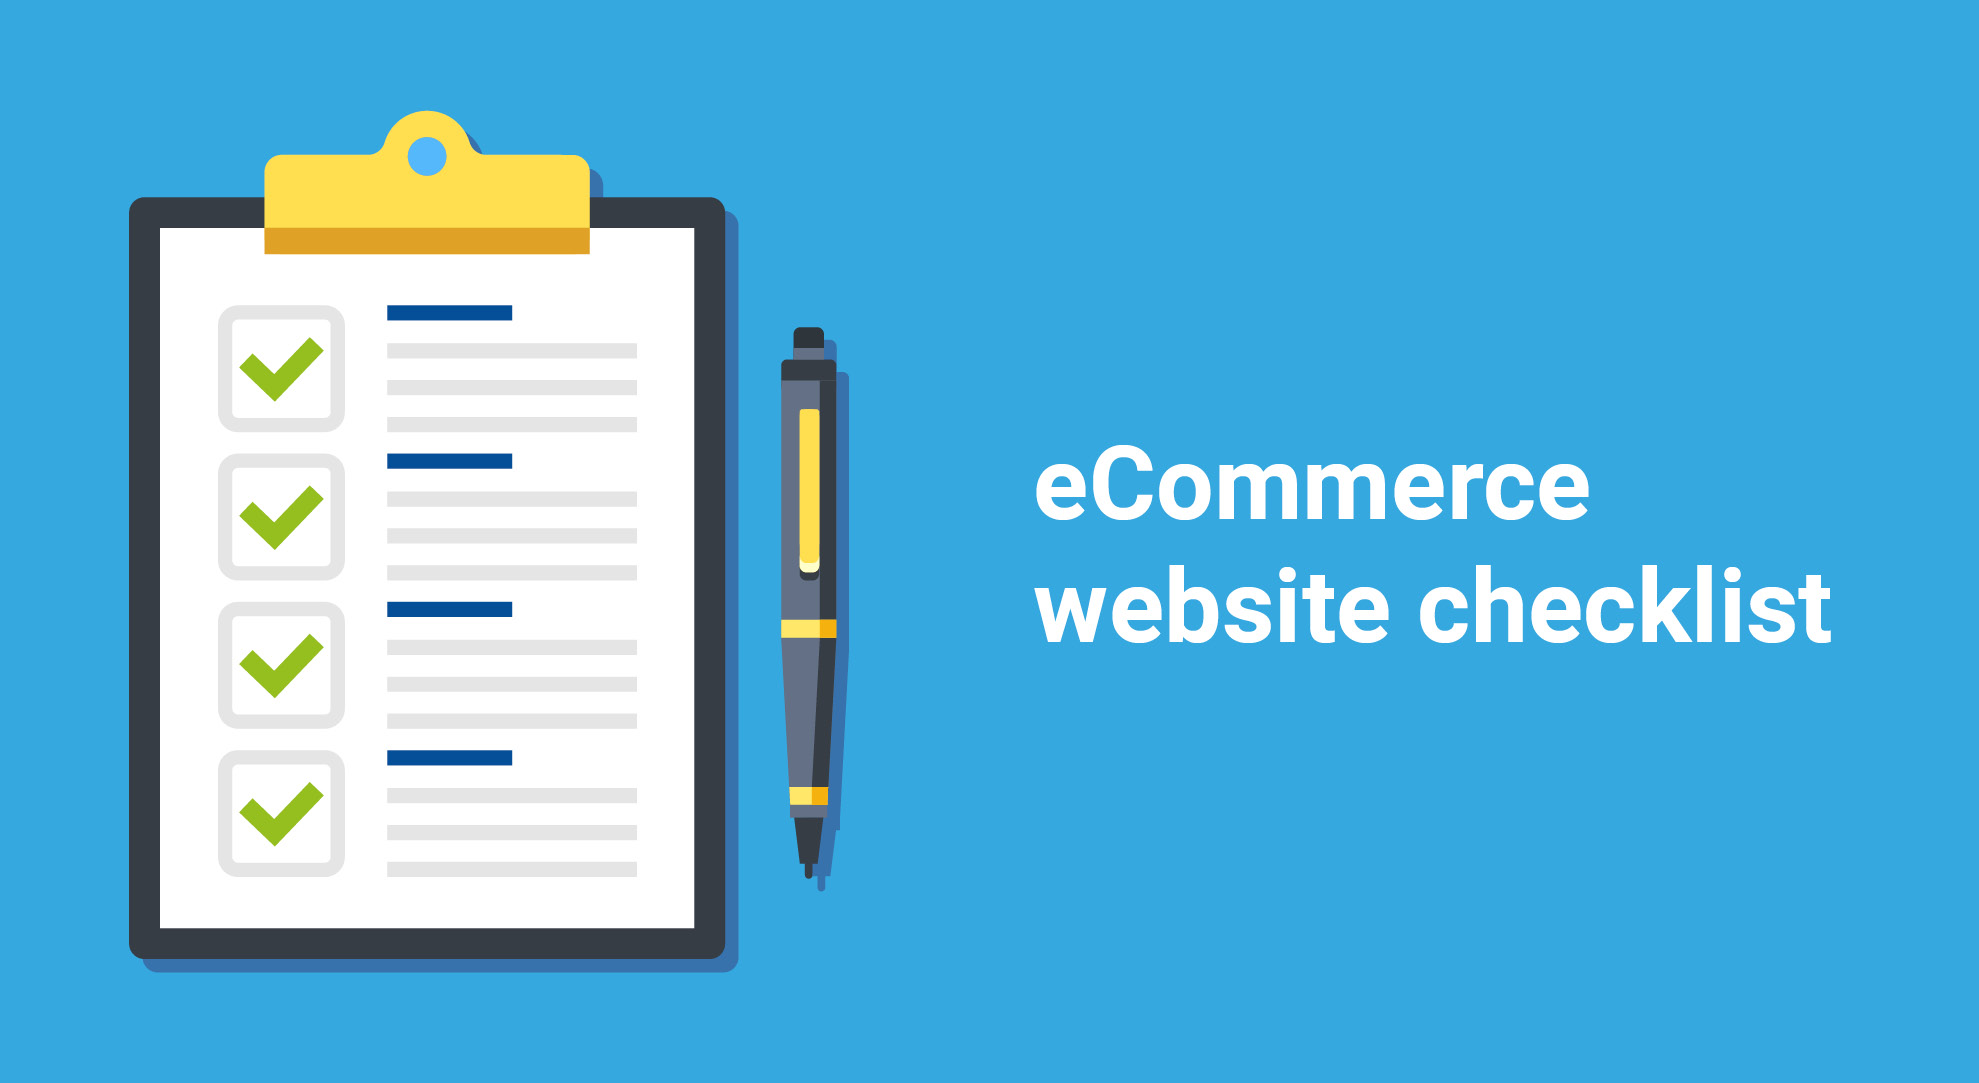 eCommerce websites design for small business checklist